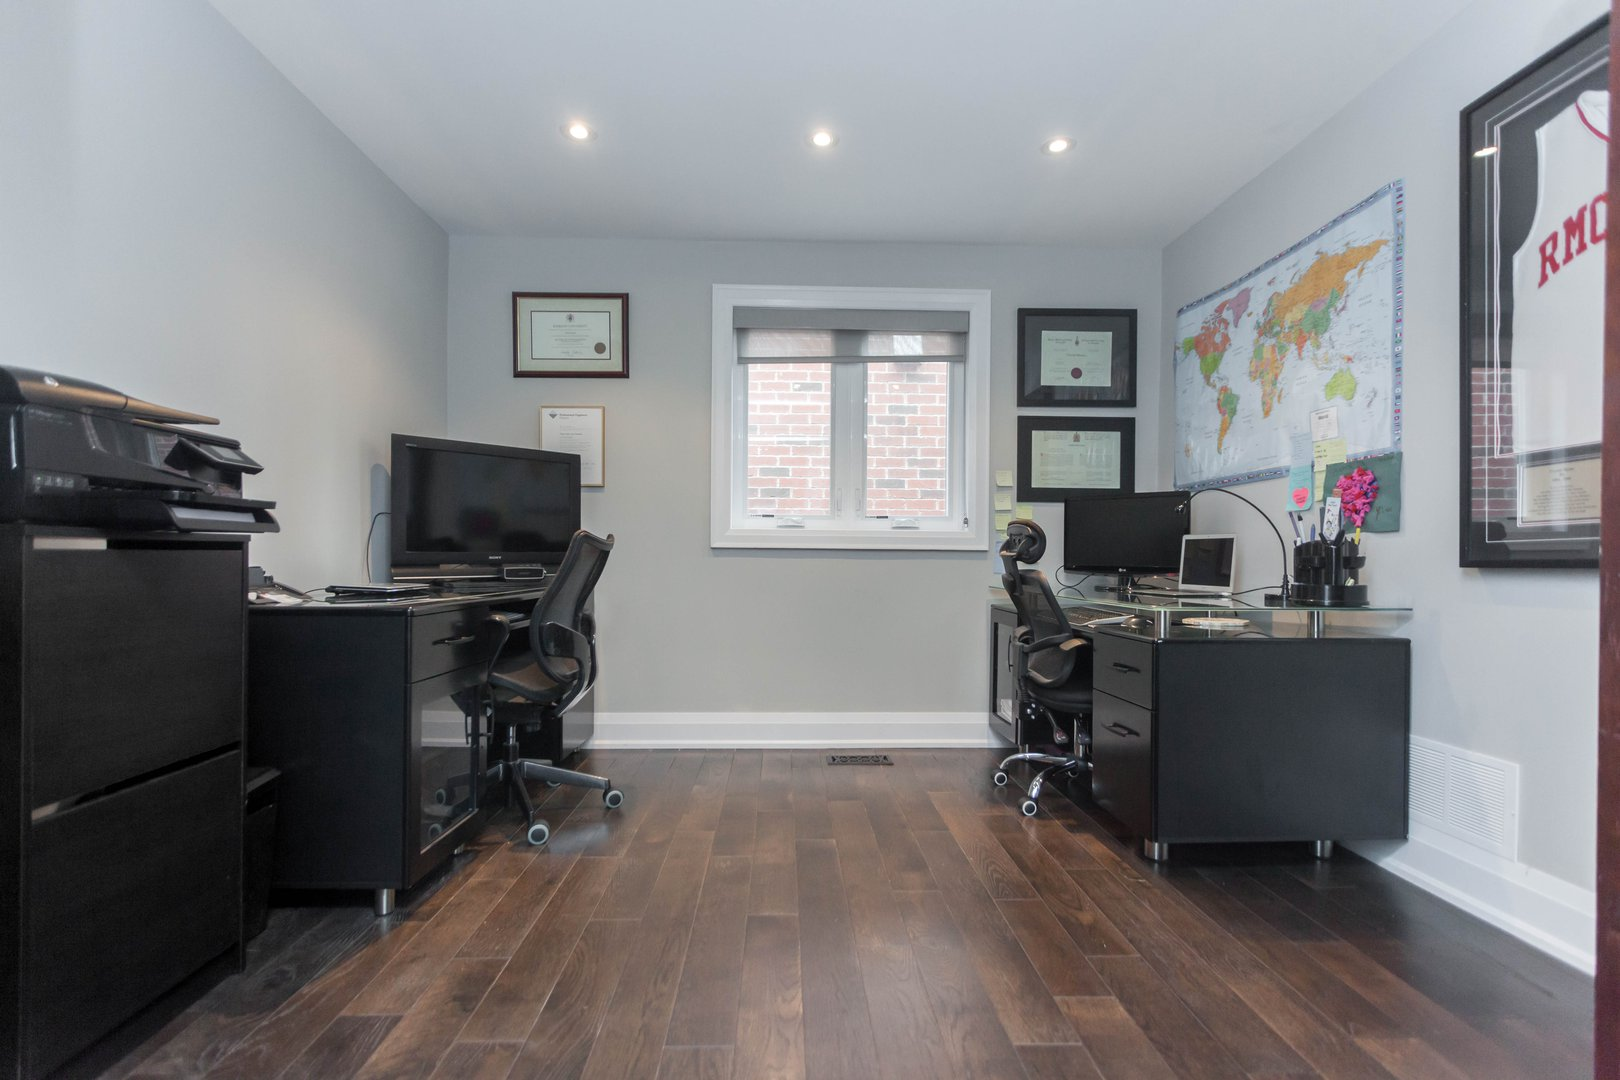 House for rent at 84 Laurel Avenue, Etobicoke, ON. This is the office with natural light and hardwood floor.